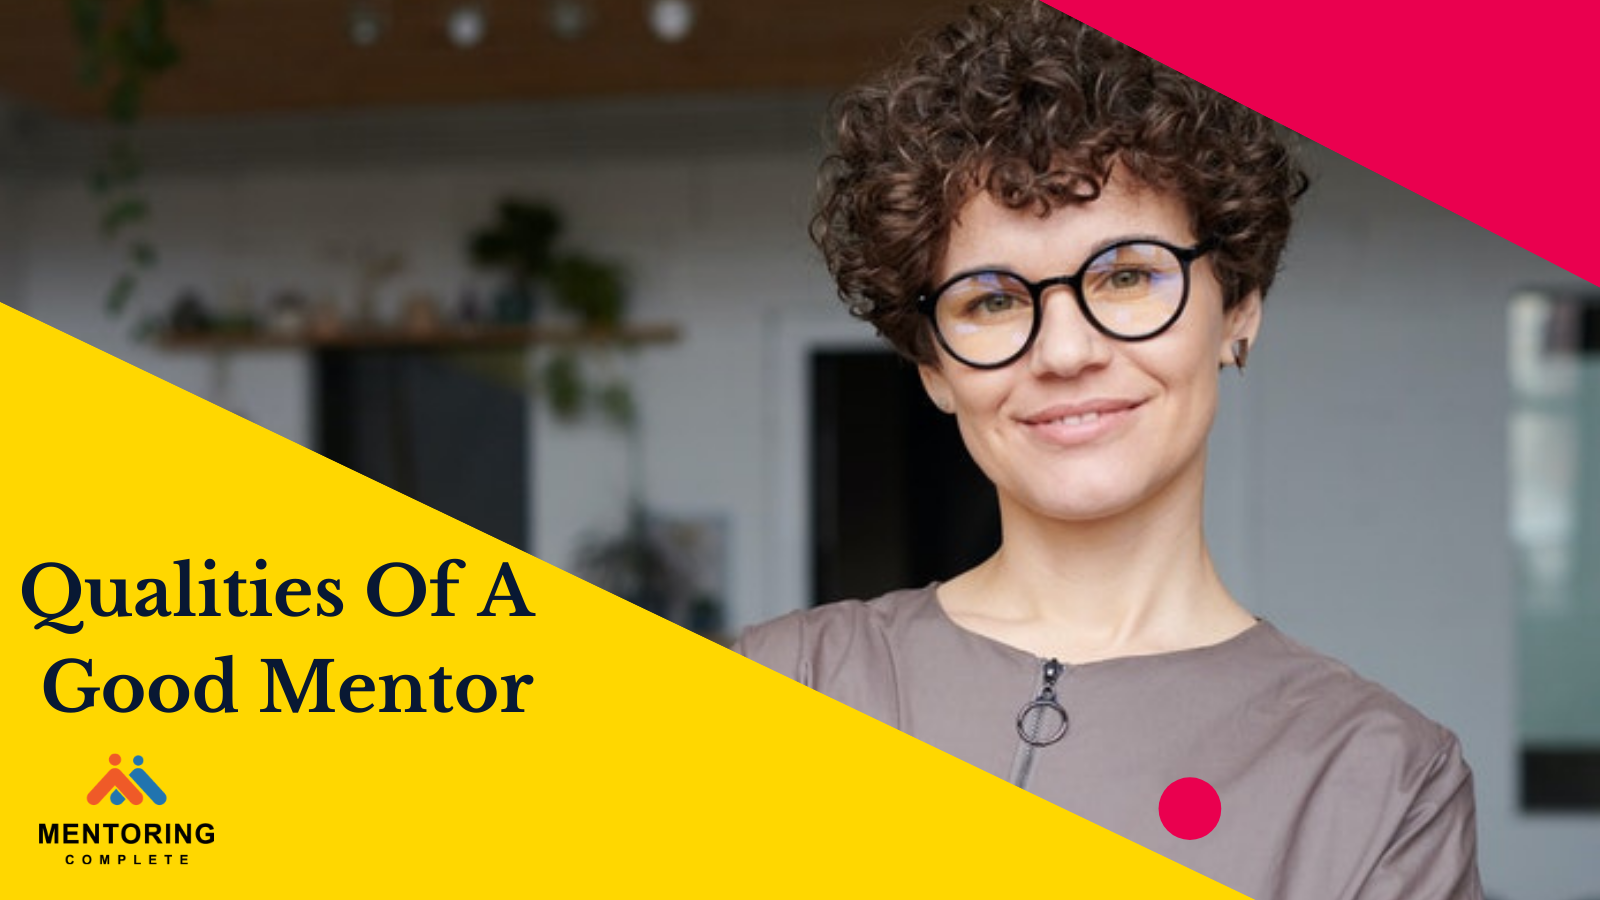 7 qualities of a good mentor